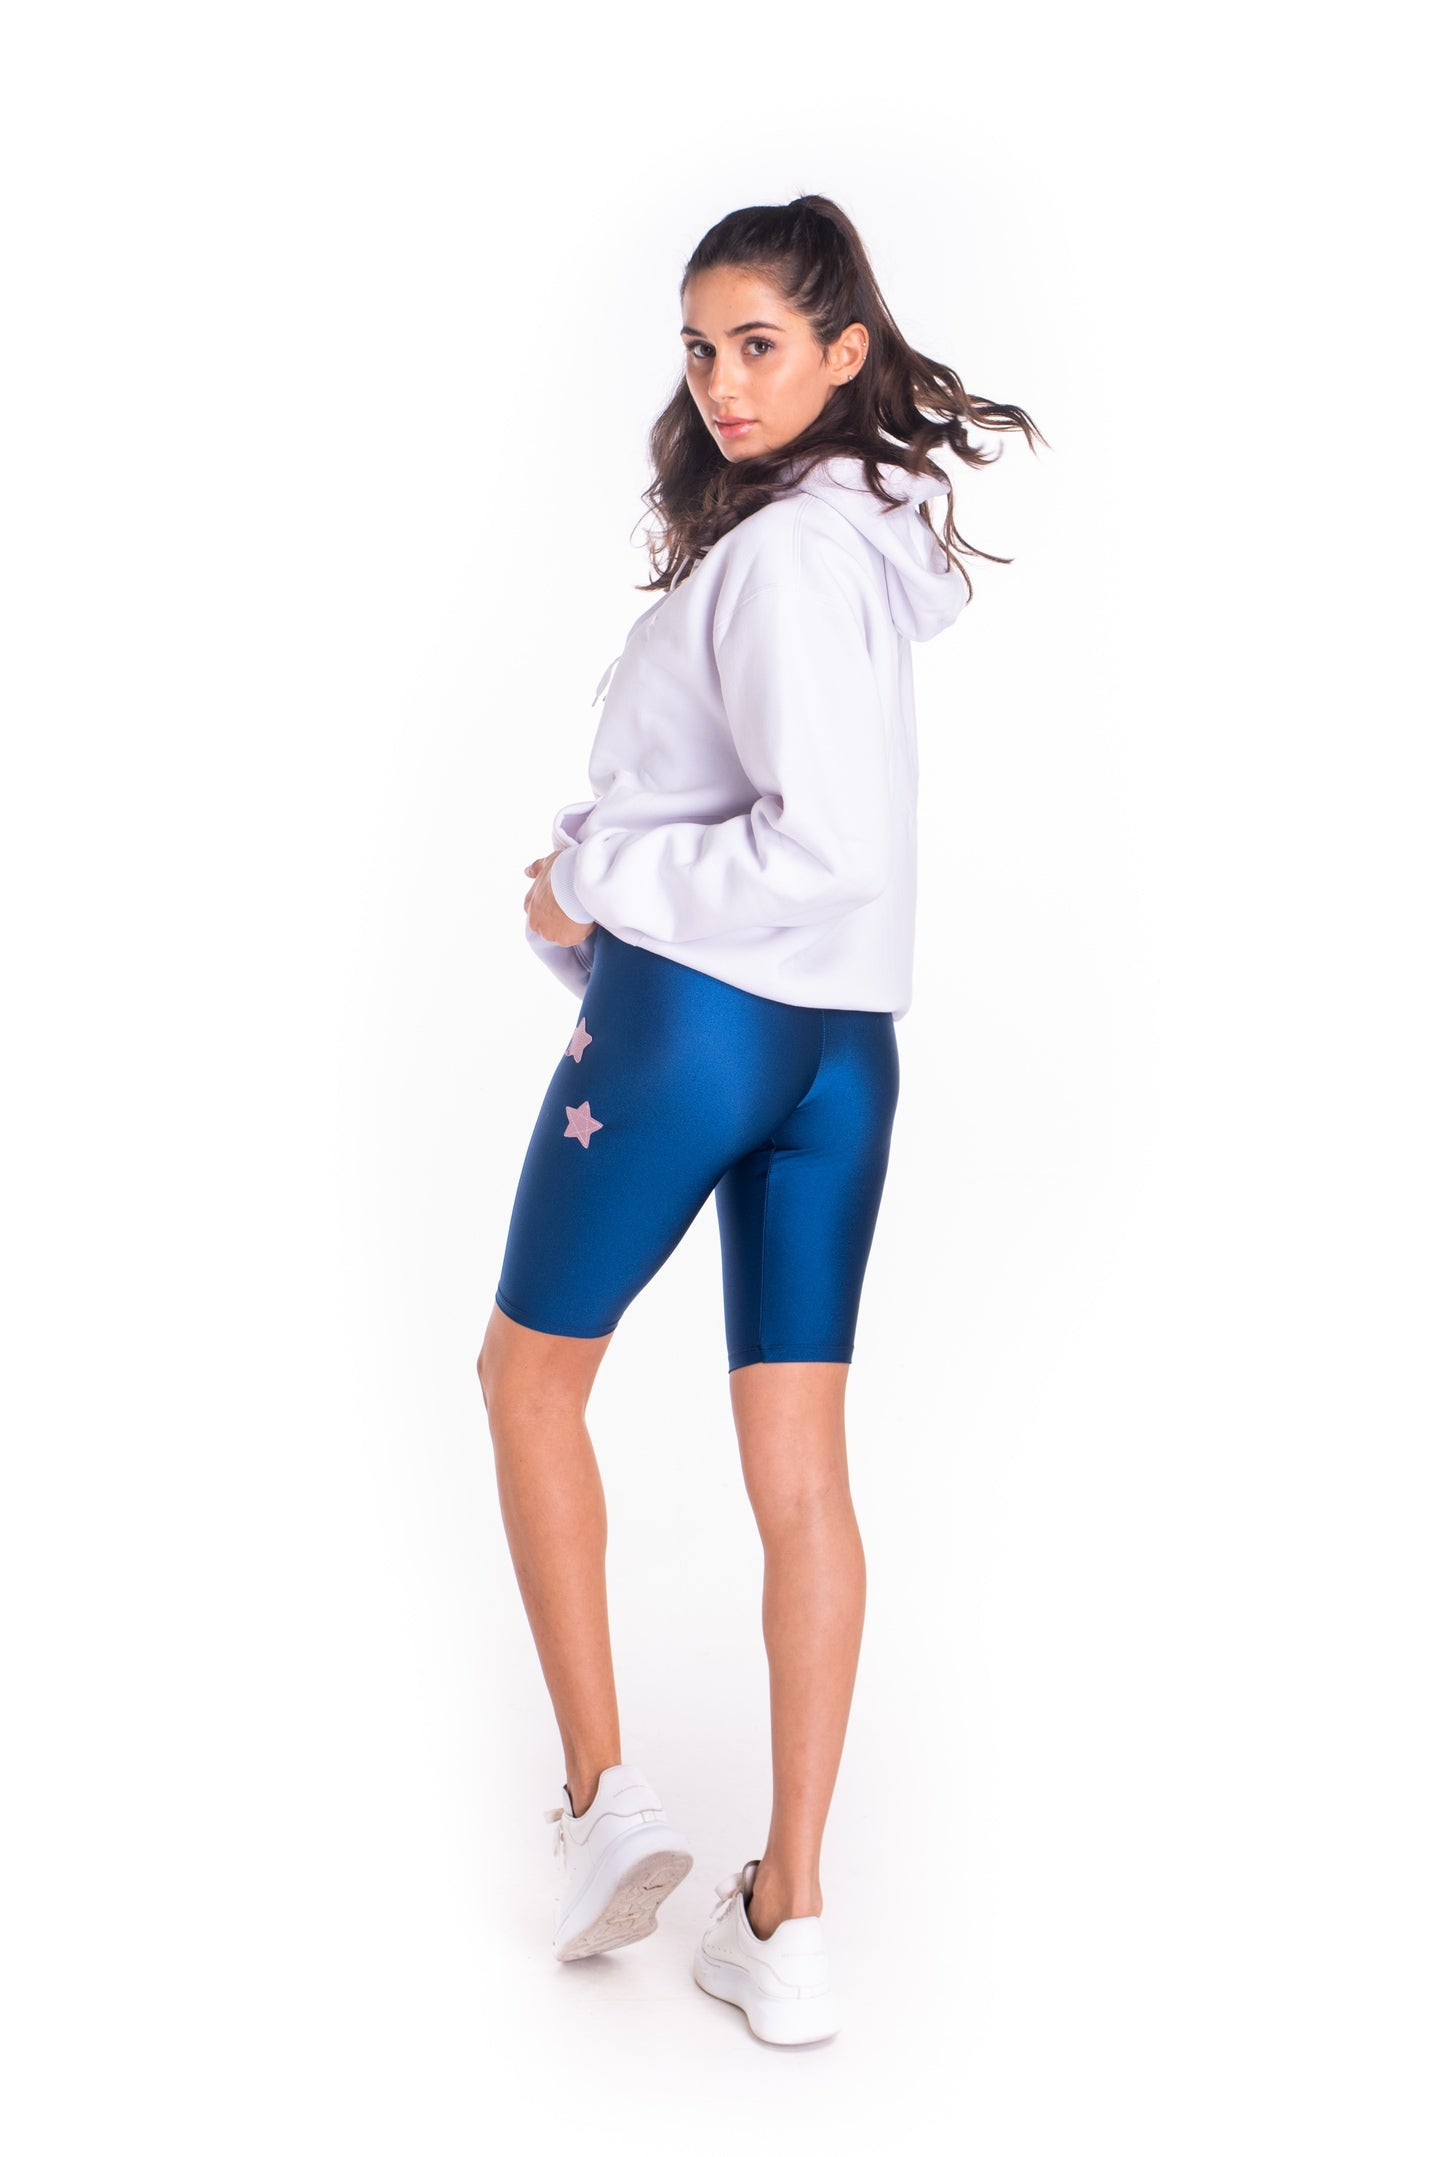 Leggings ciclista in lycra blu laminato con stelle applicate rosa